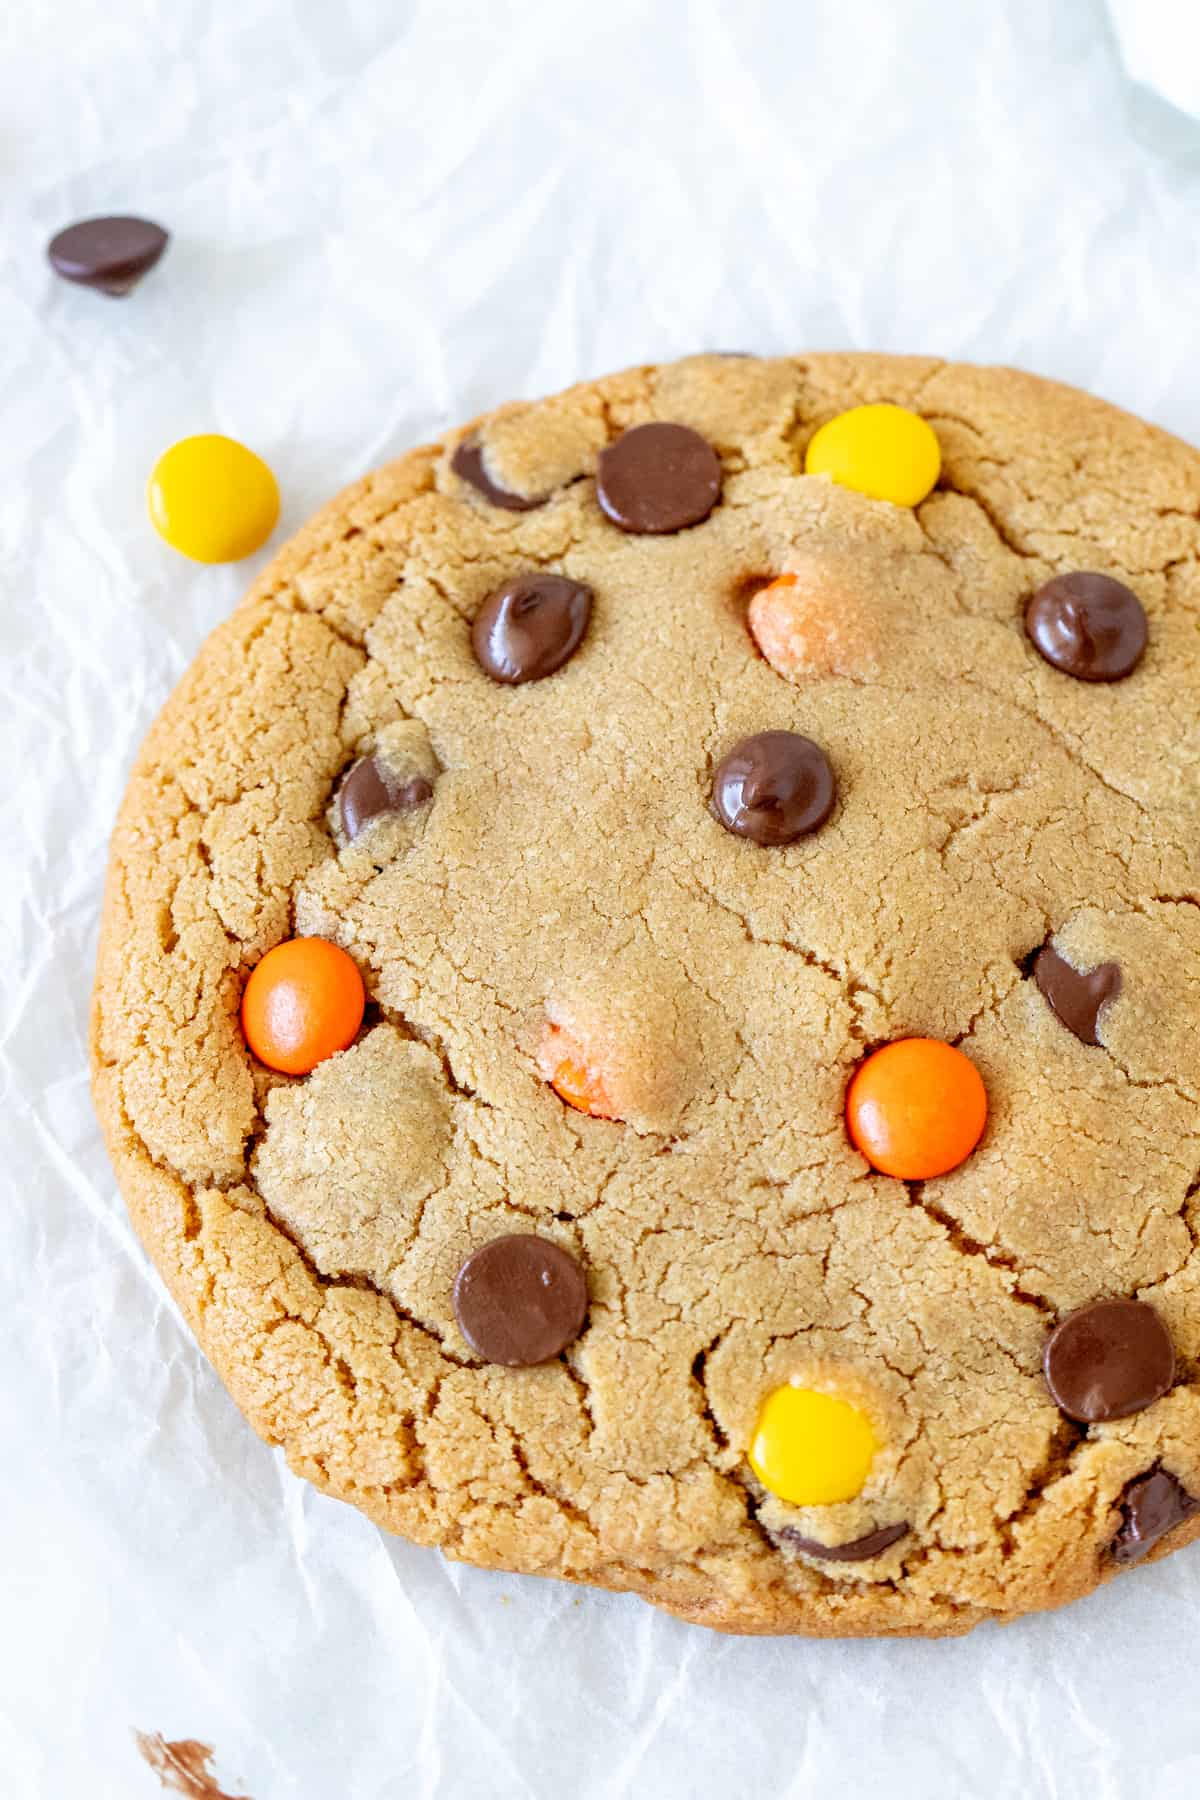 Very large peanut butter cookie with chocolate chips and Reese's Pieces